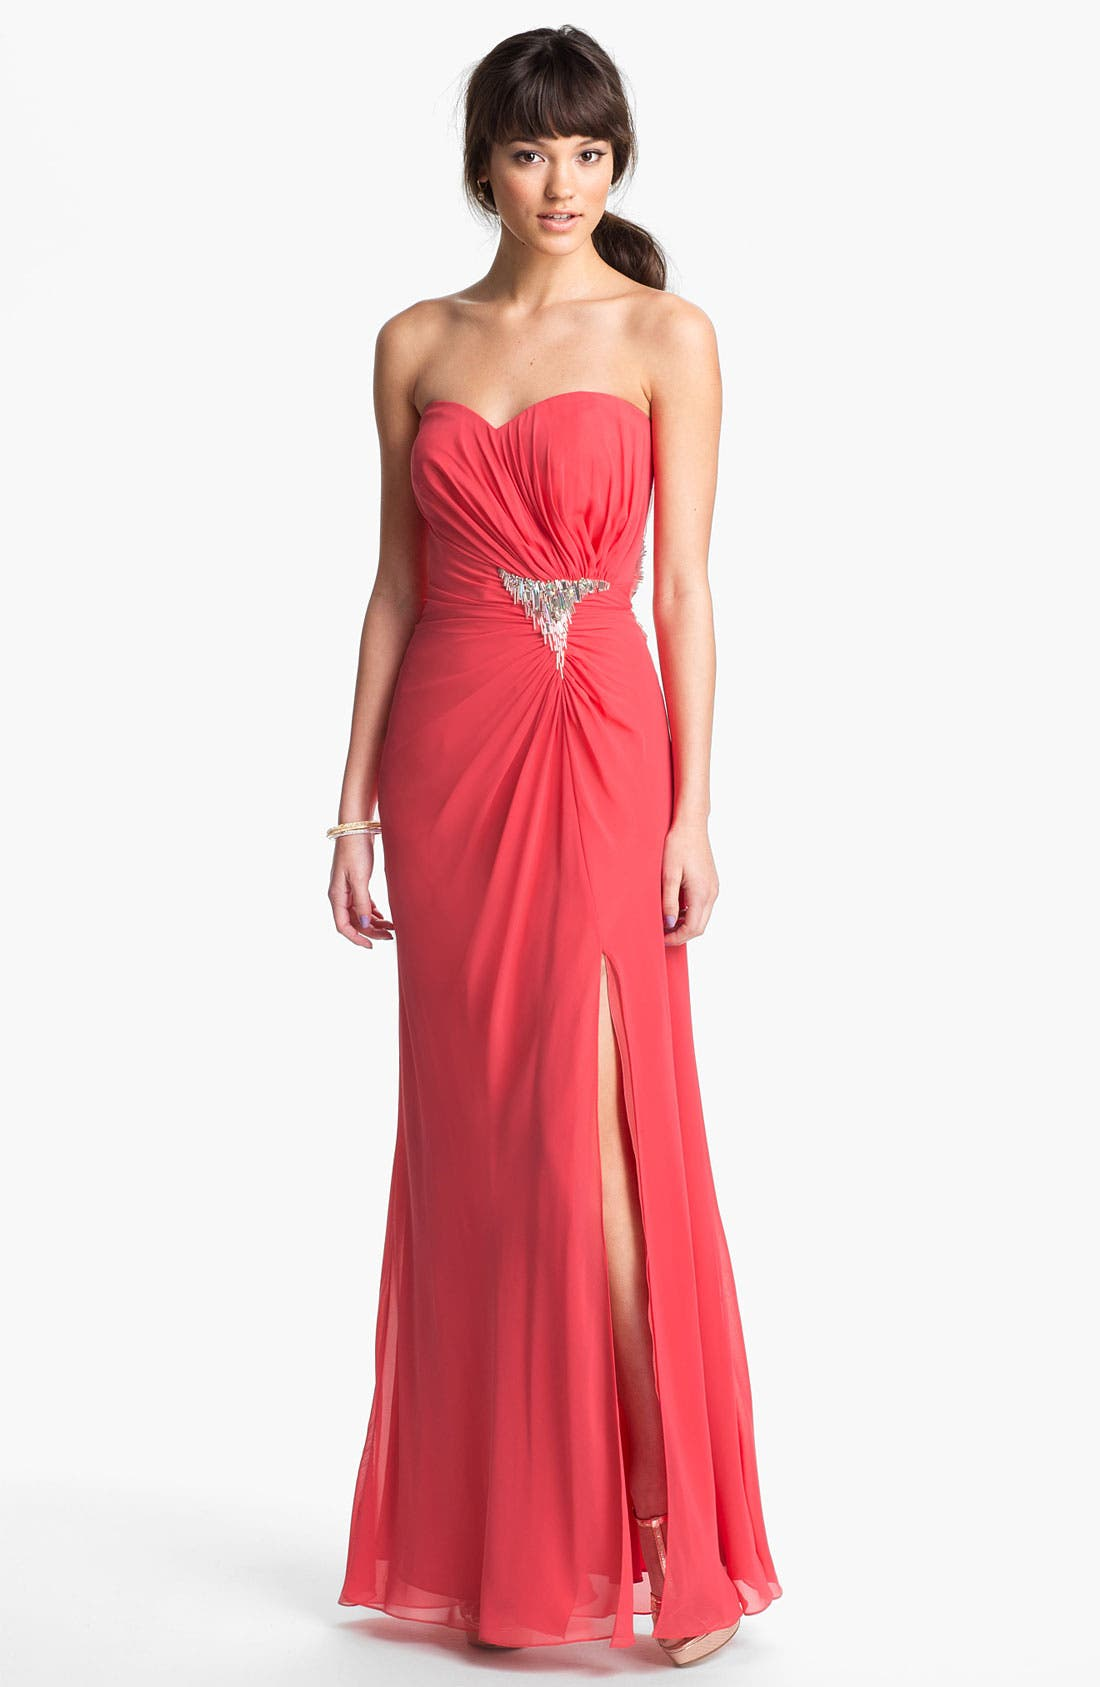 Alternate Image 1 Selected - Faviana Embellished Strapless Chiffon Gown